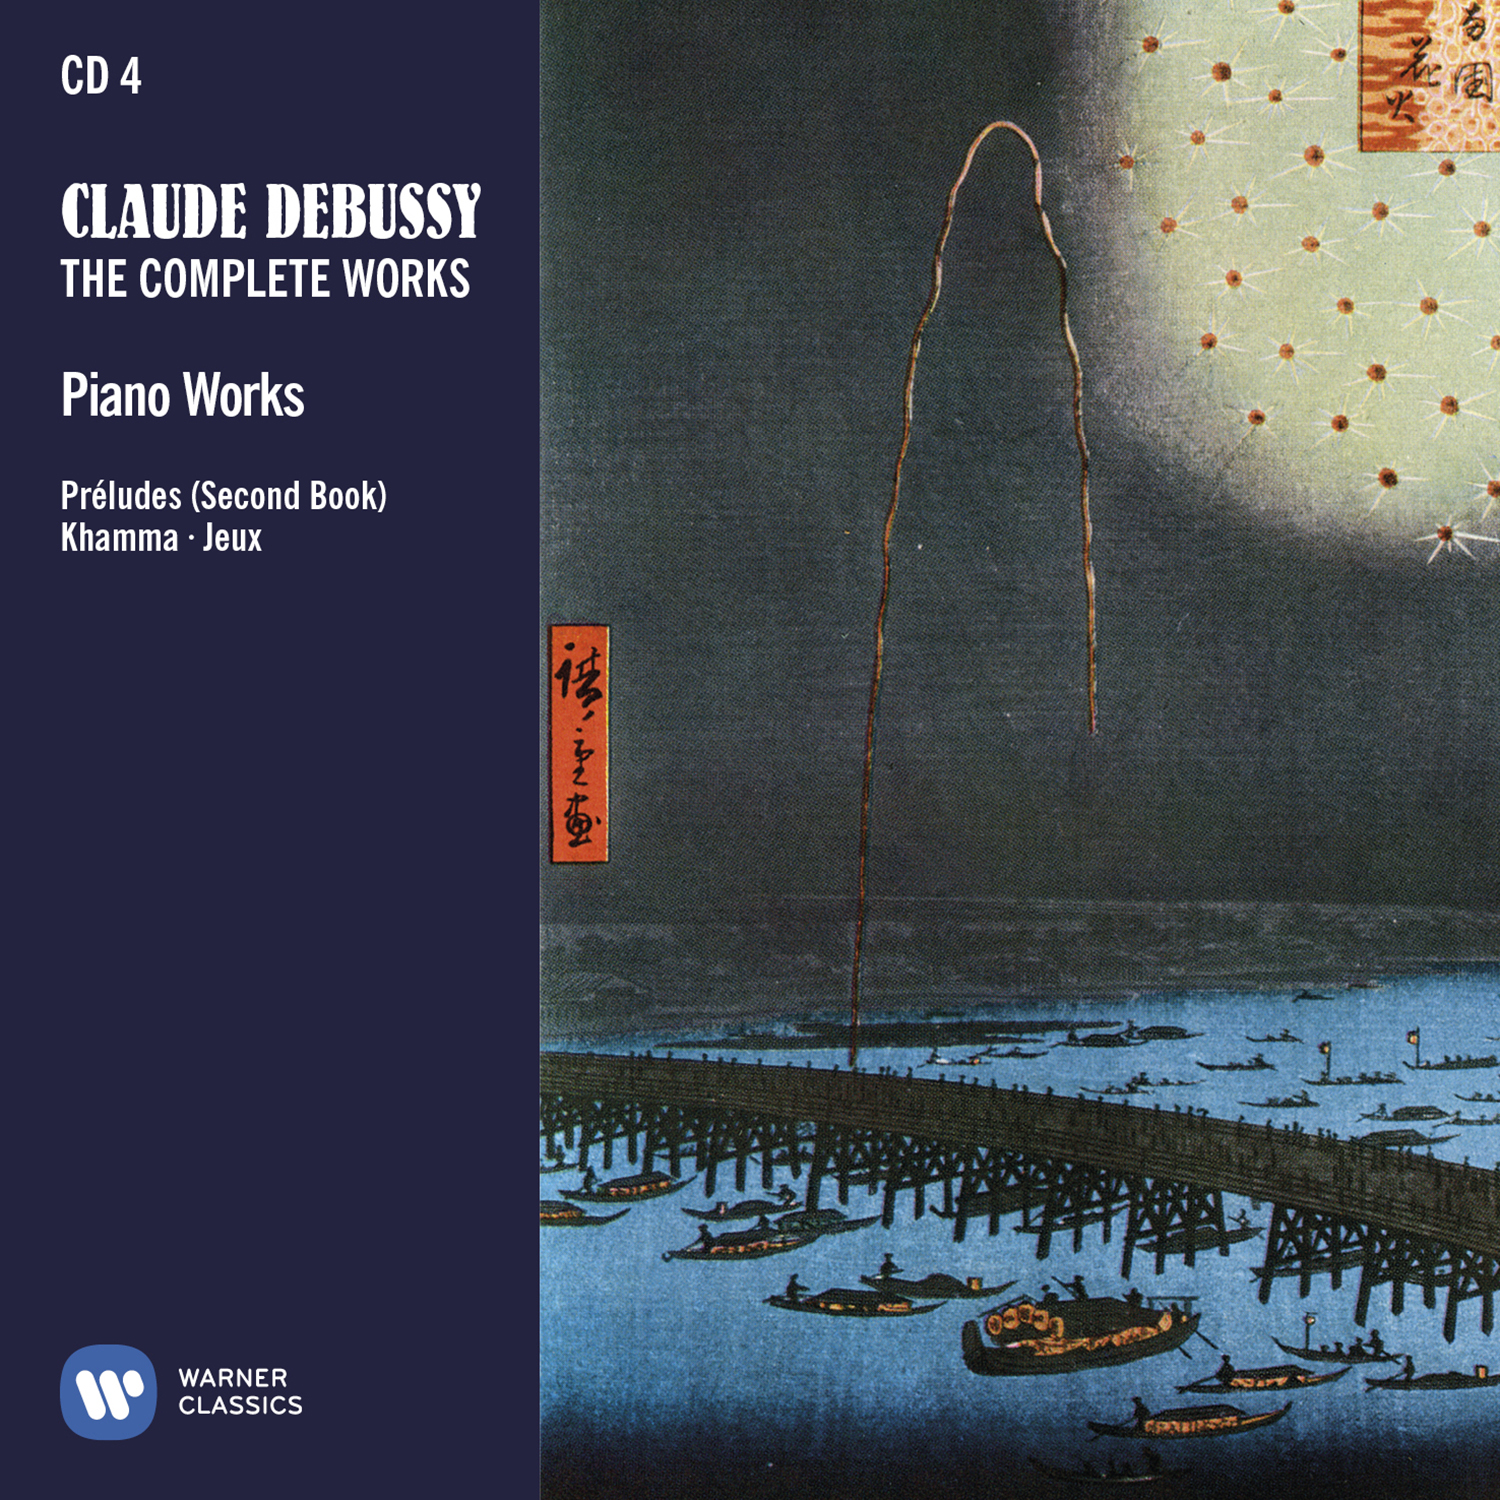 Debussy The complete works - Cover wallet CD4.jpg